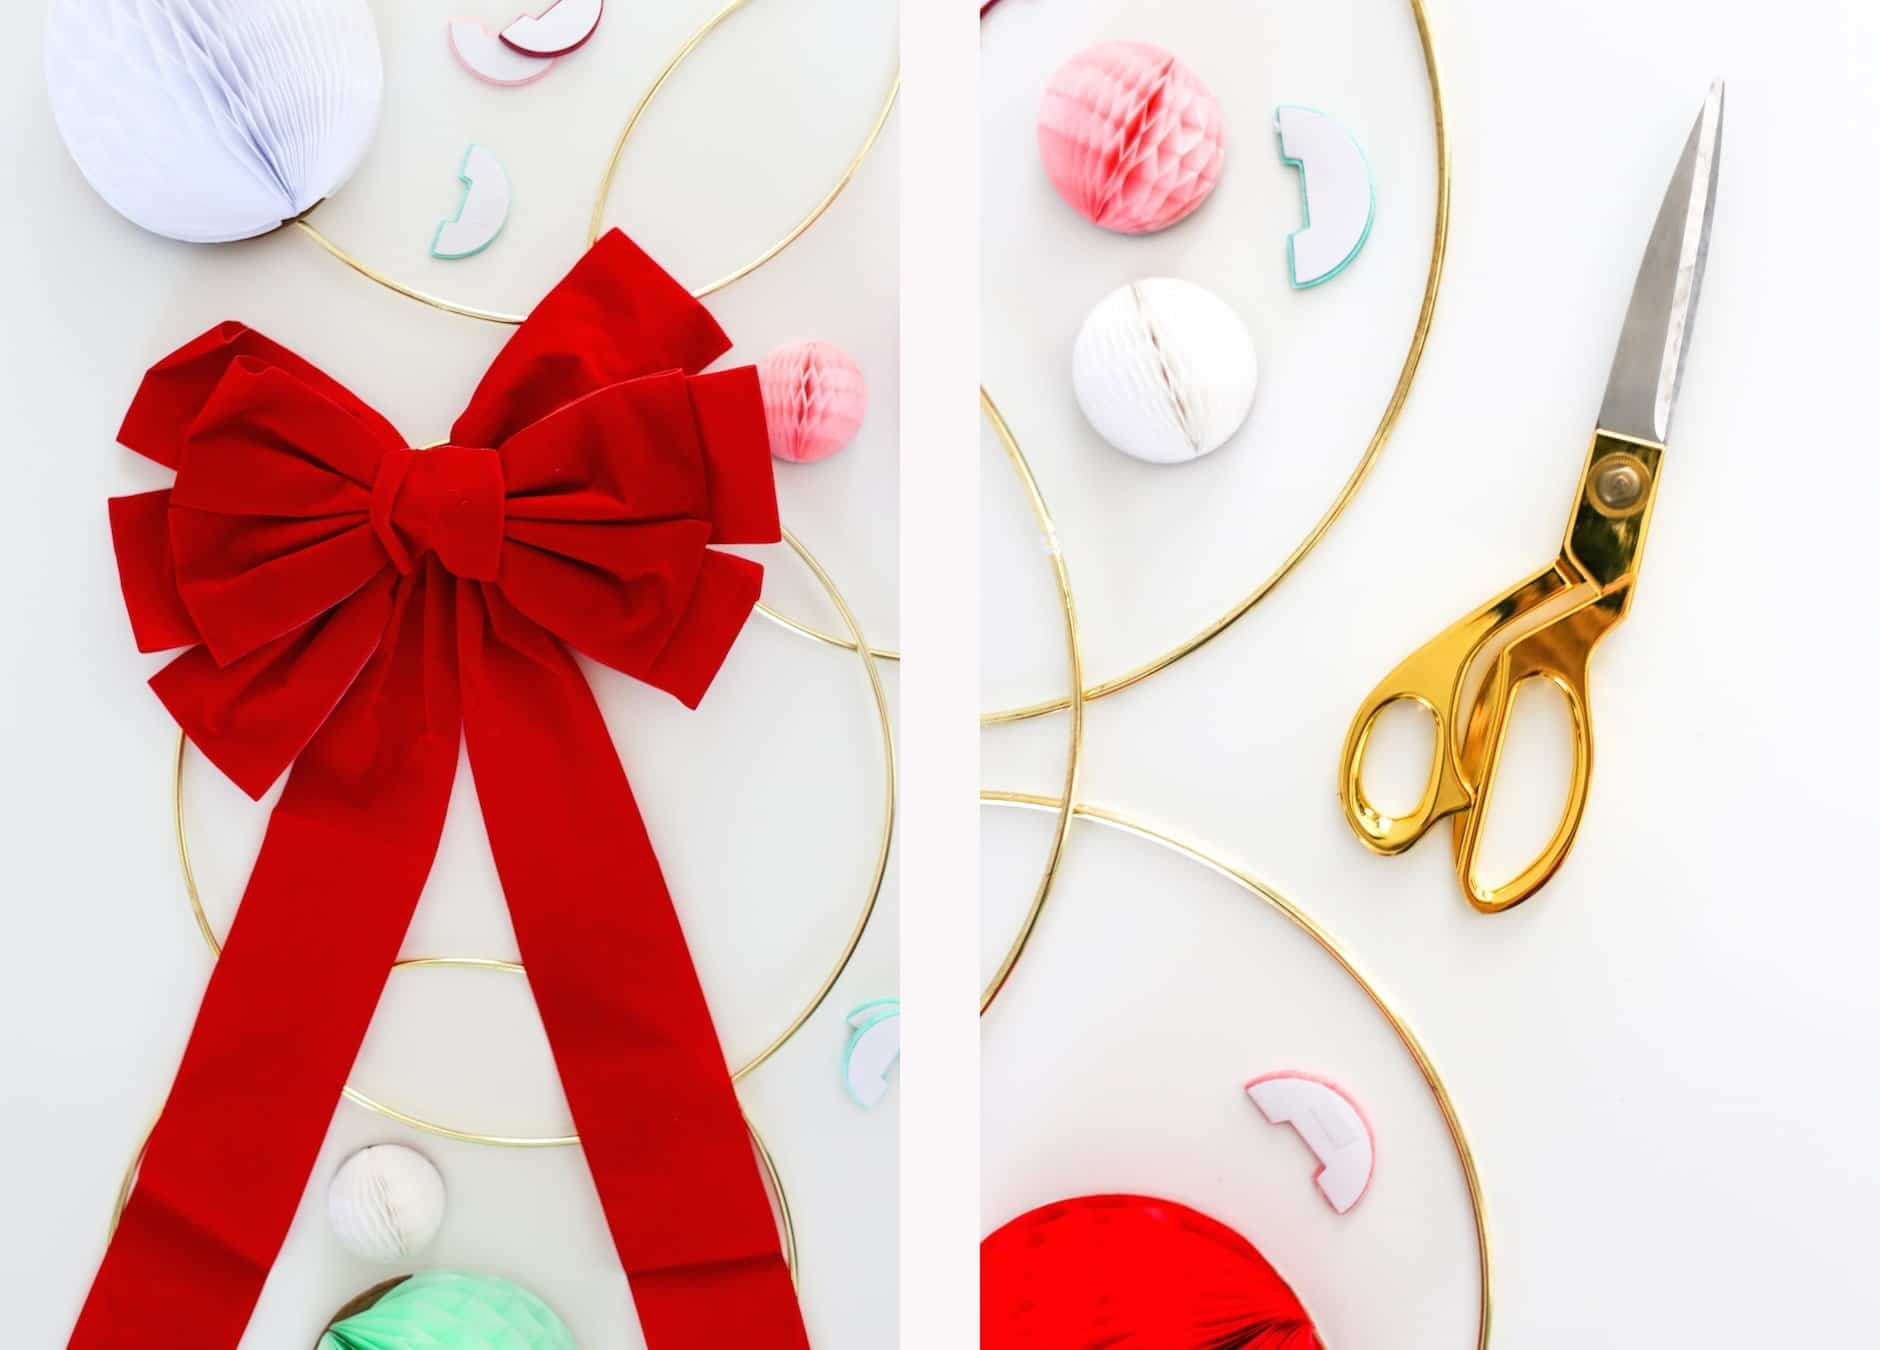 Host a Modern Holiday Wreath Making Party, How to Throw a Wreath Making Party, Honeycomb Wreath, DIY Holiday Wreath Party, Brunch, Holiday Wreath-Making Brunch Party, Christmas Wreath-Making Party, Honeycomb Christmas Wreath Tutorial, How to Throw a Wreath Making Party